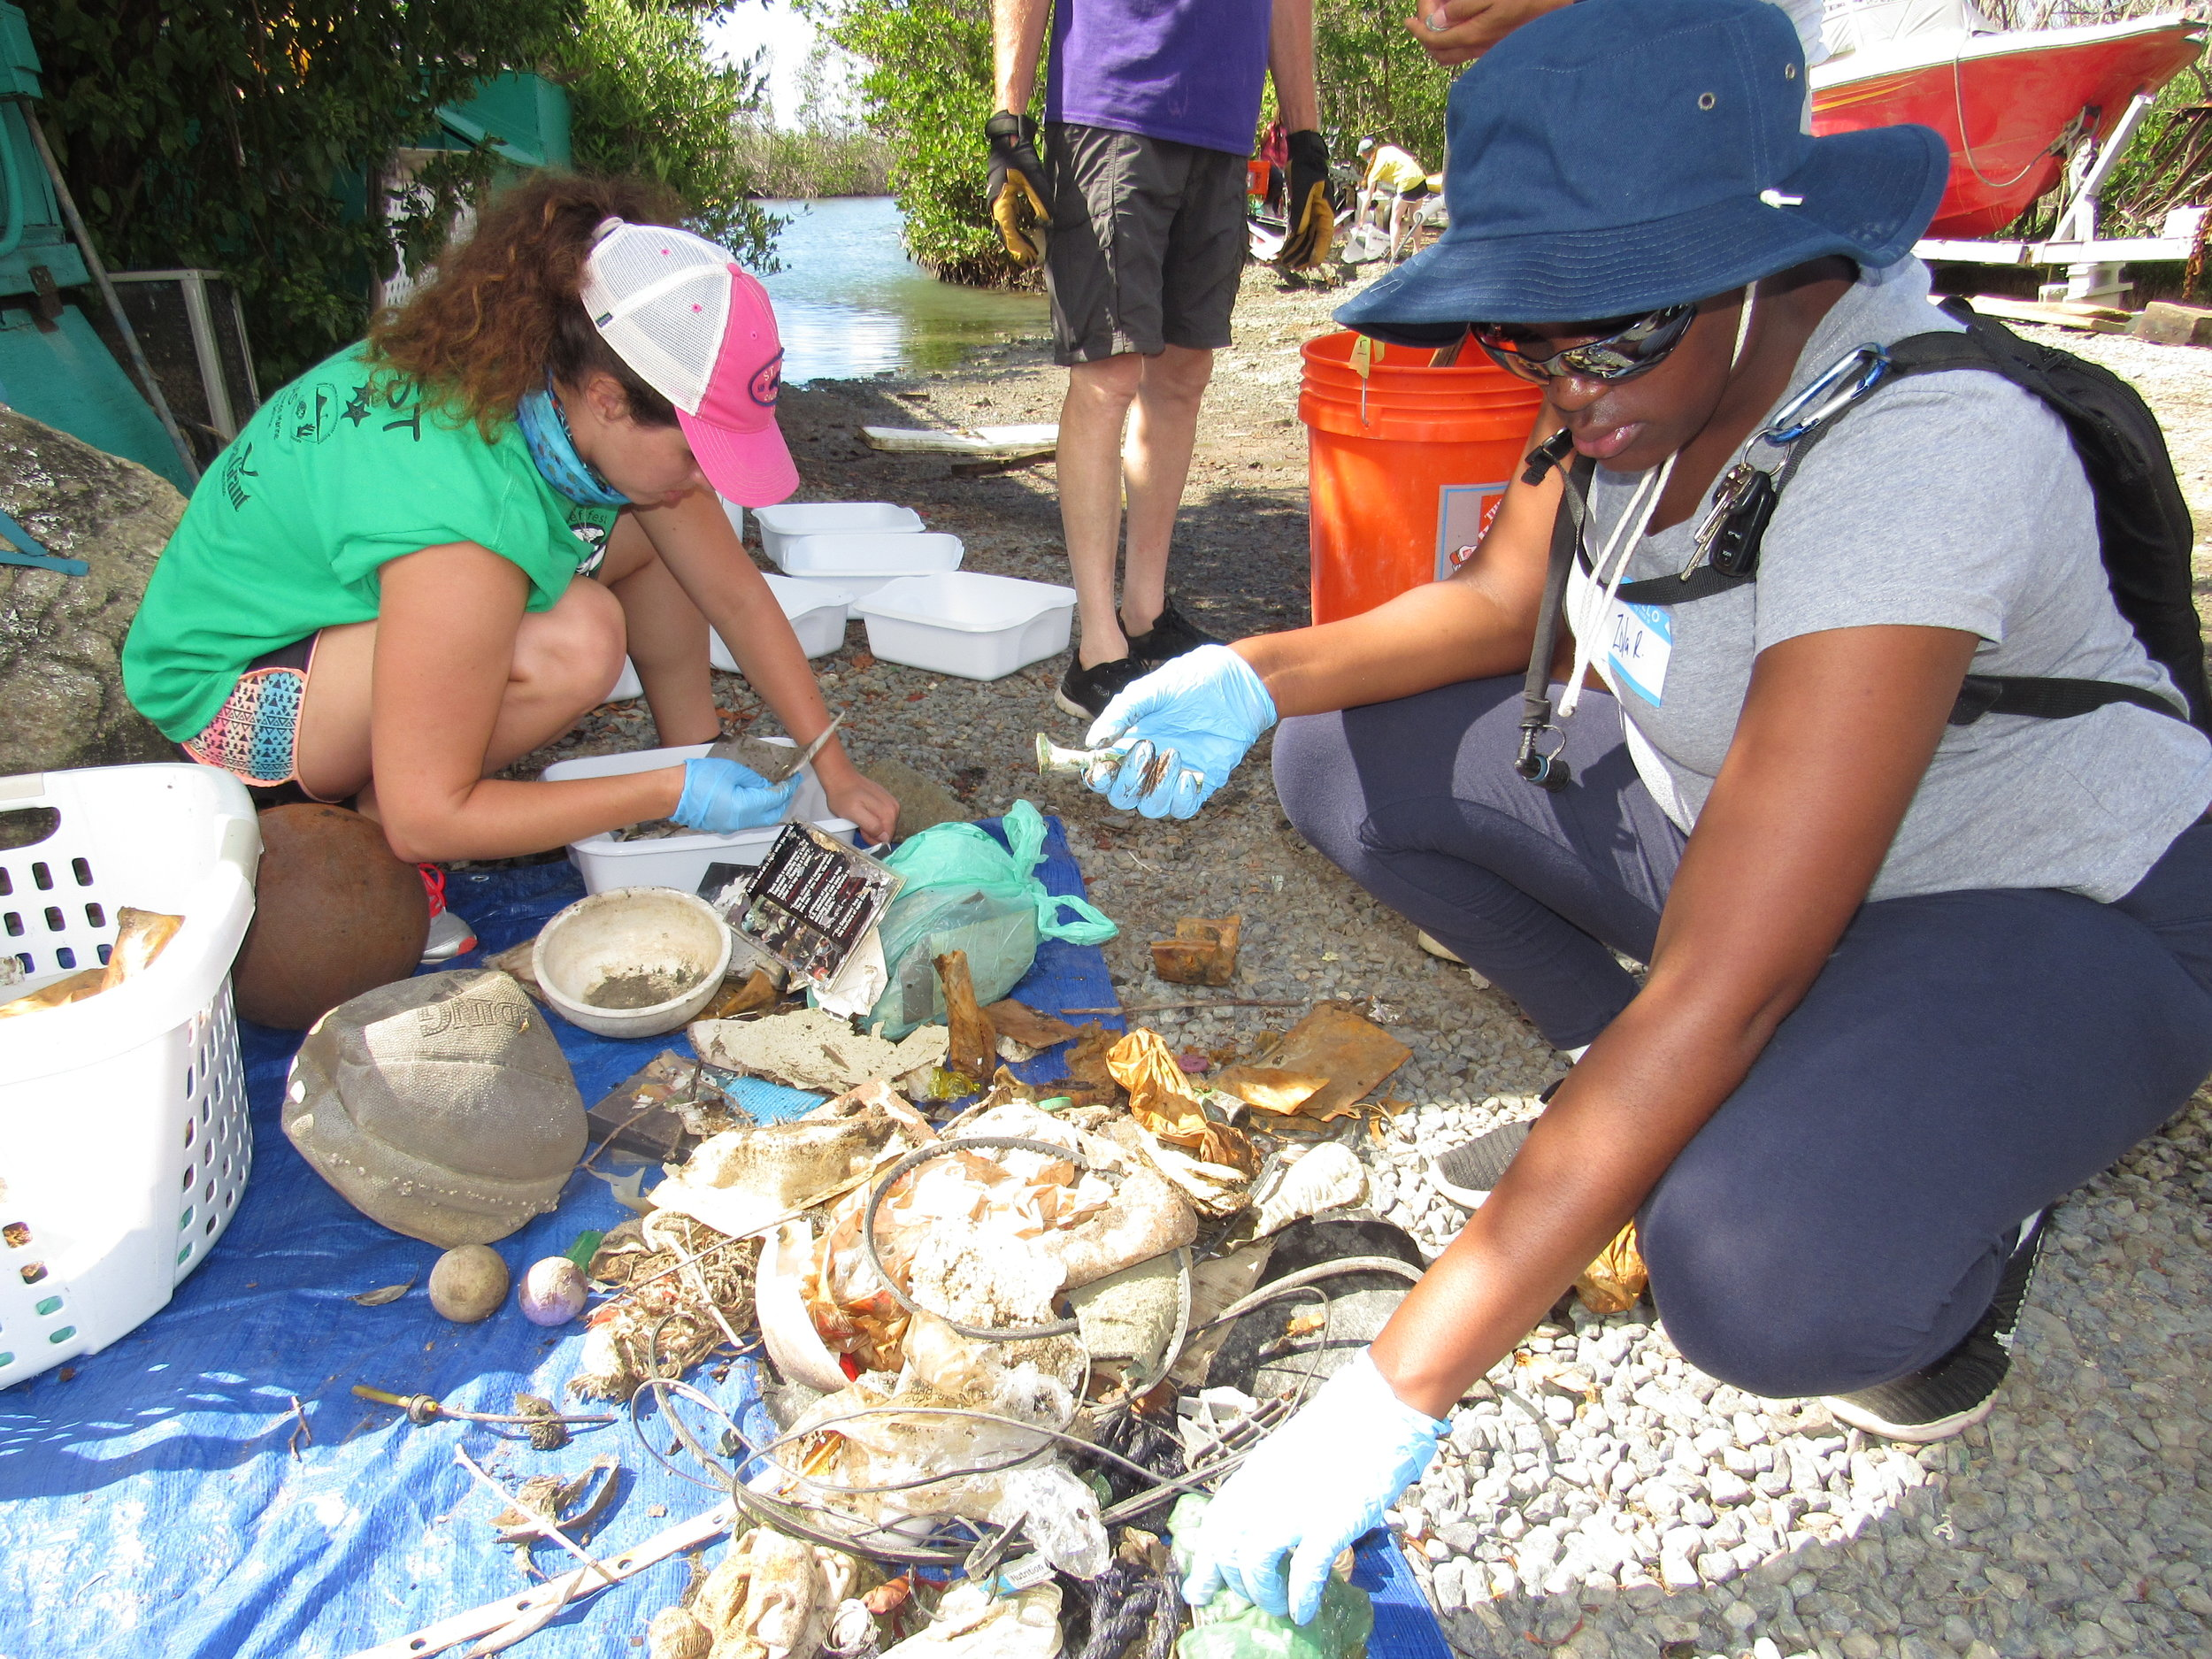 University of the Virgin Islands Masters of Marine & Environmental Science student volunteers, Danielle Lasseigne and Zola Roper, sort and count marine debris items at the Great Mangrove Cleanup.  Photo credit: Jarvon Stout